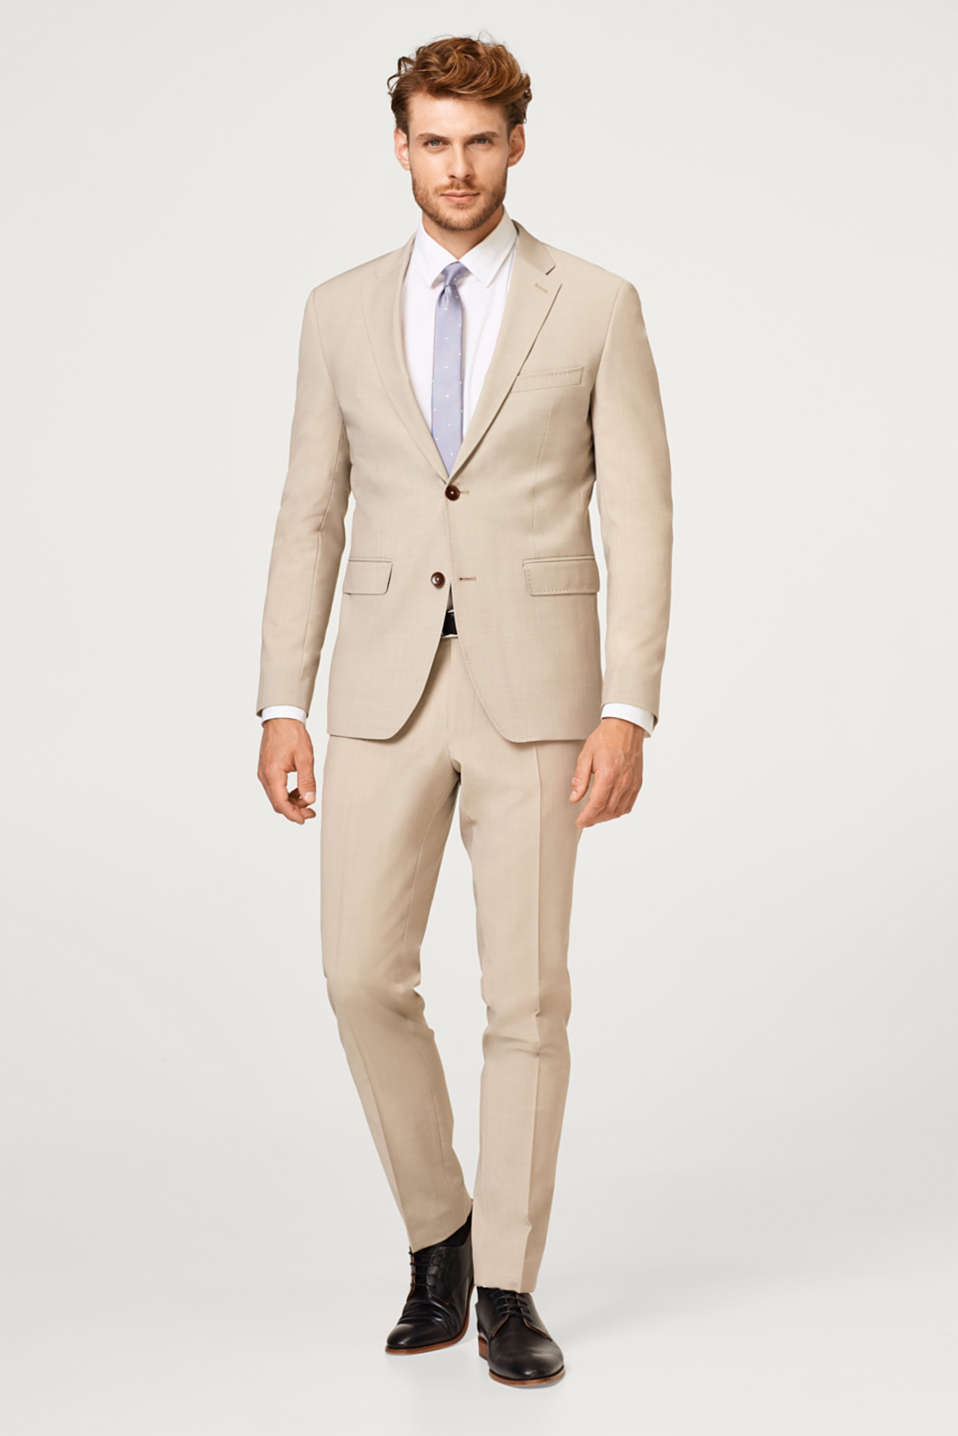 ACTIVE SUIT finely textured tailored jacket, wool blend